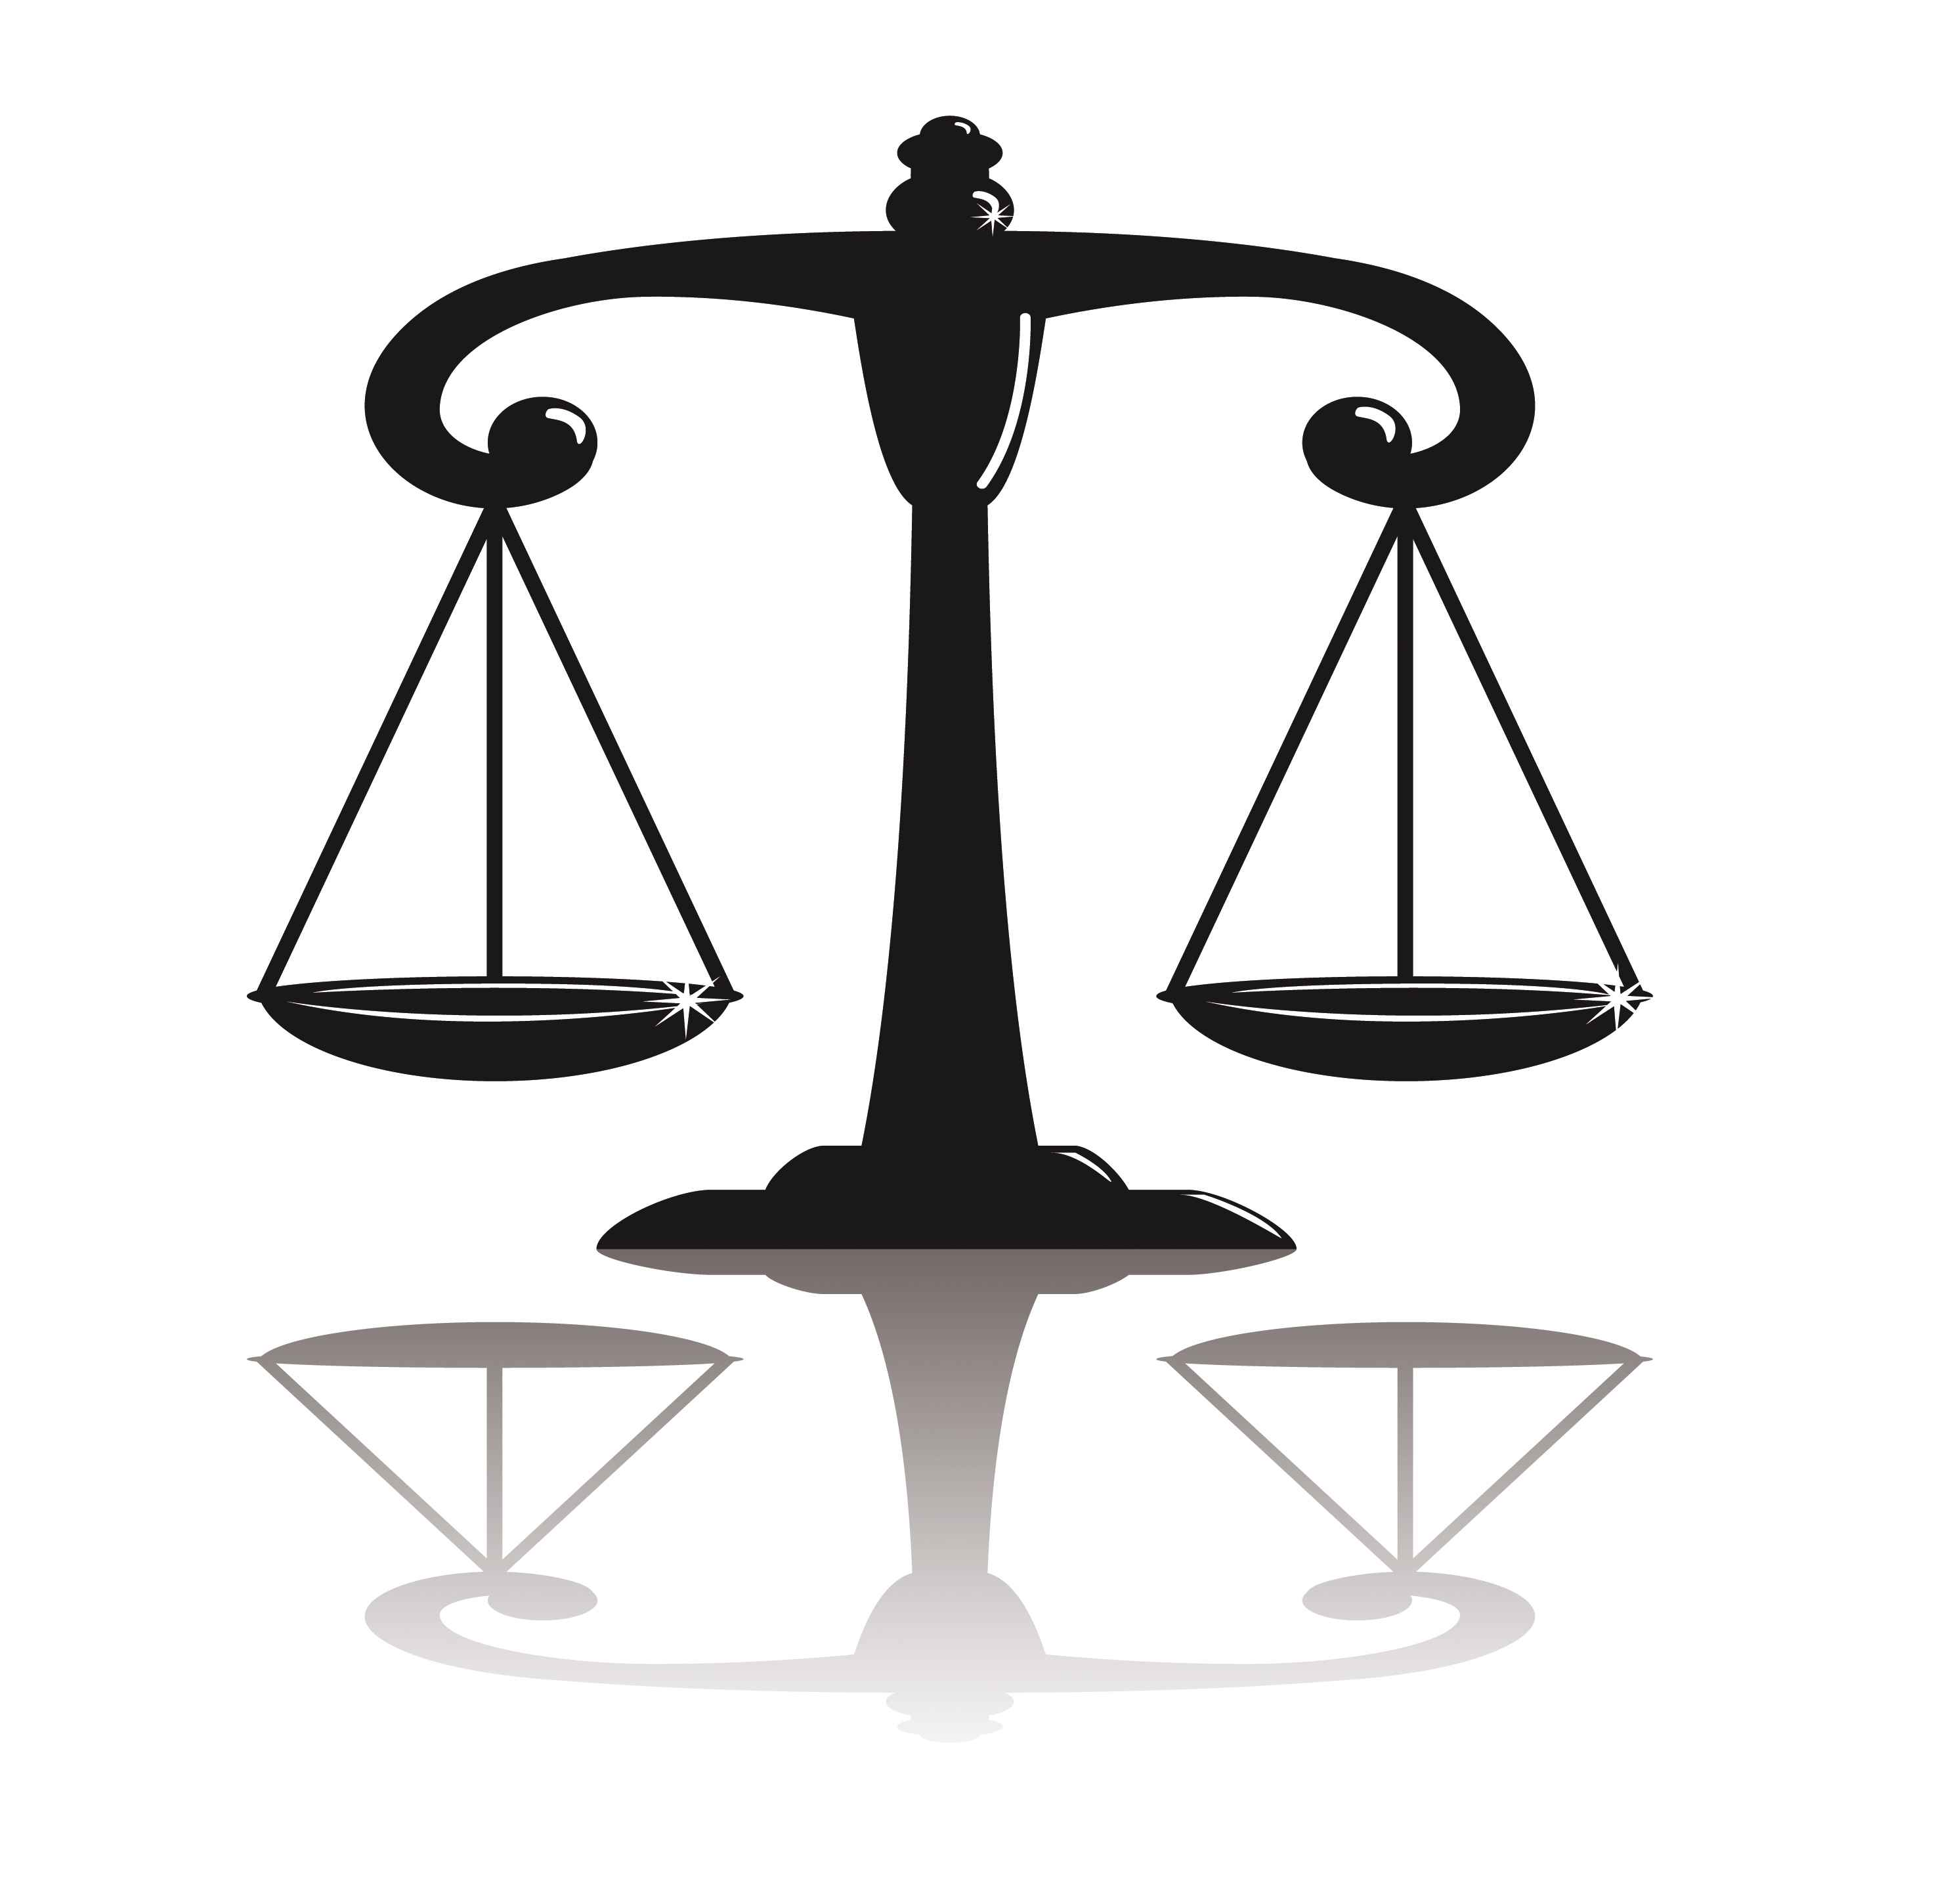 Balance justice clipart free download best balance justice clipart 2946x2900 scales of justice animated clipart kid biocorpaavc Images